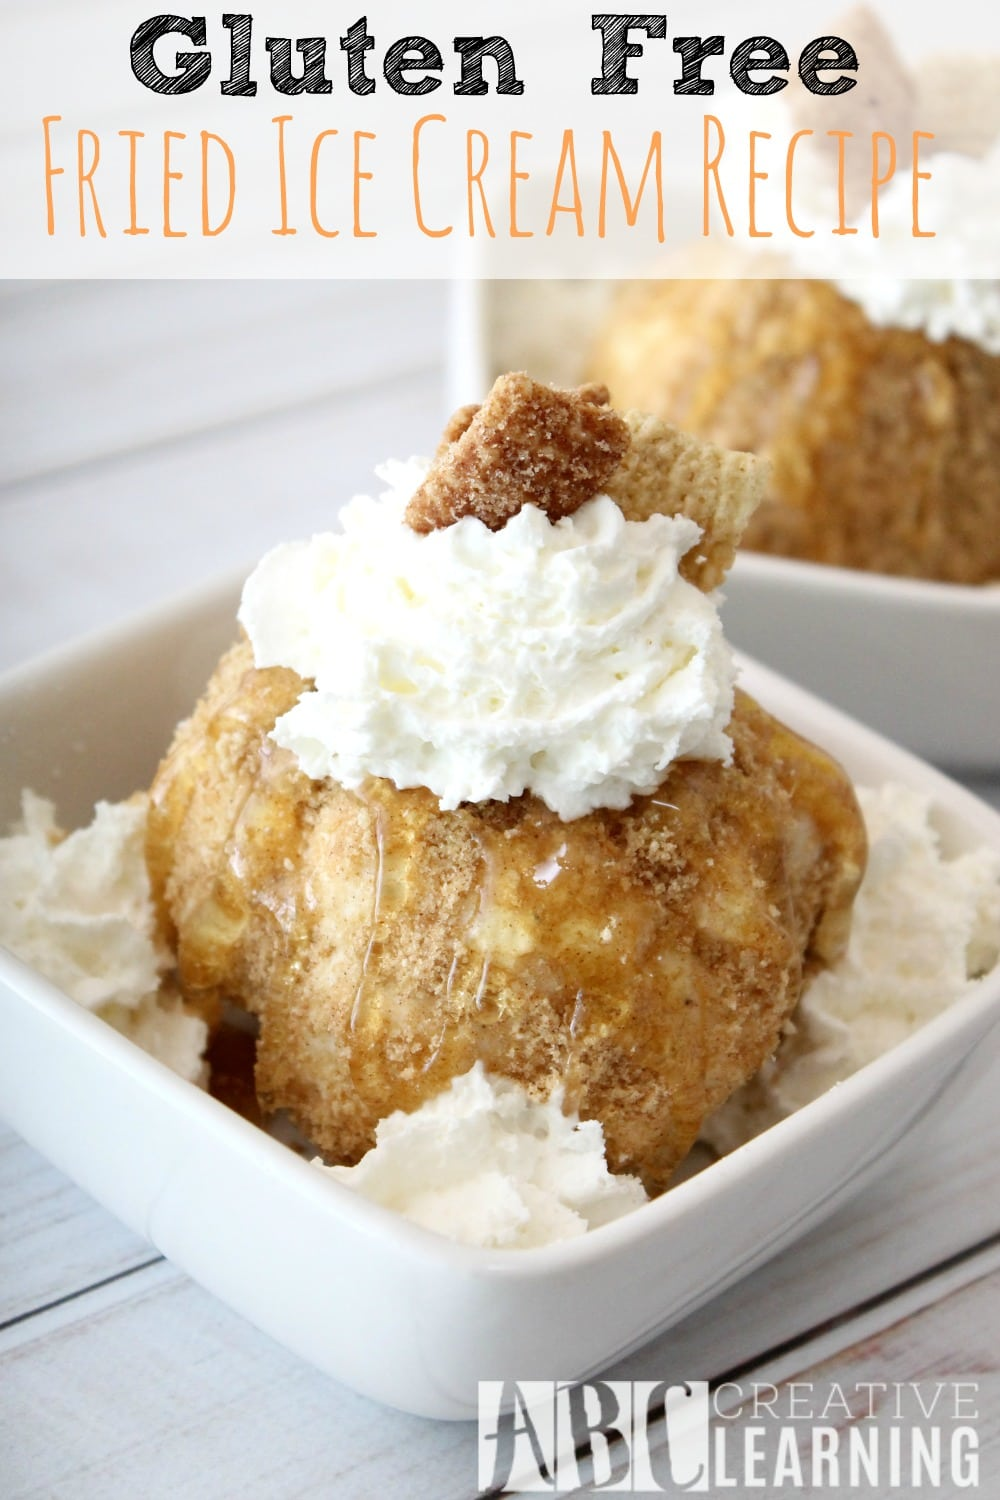 Gluten Free Fried Ice Cream Recipe